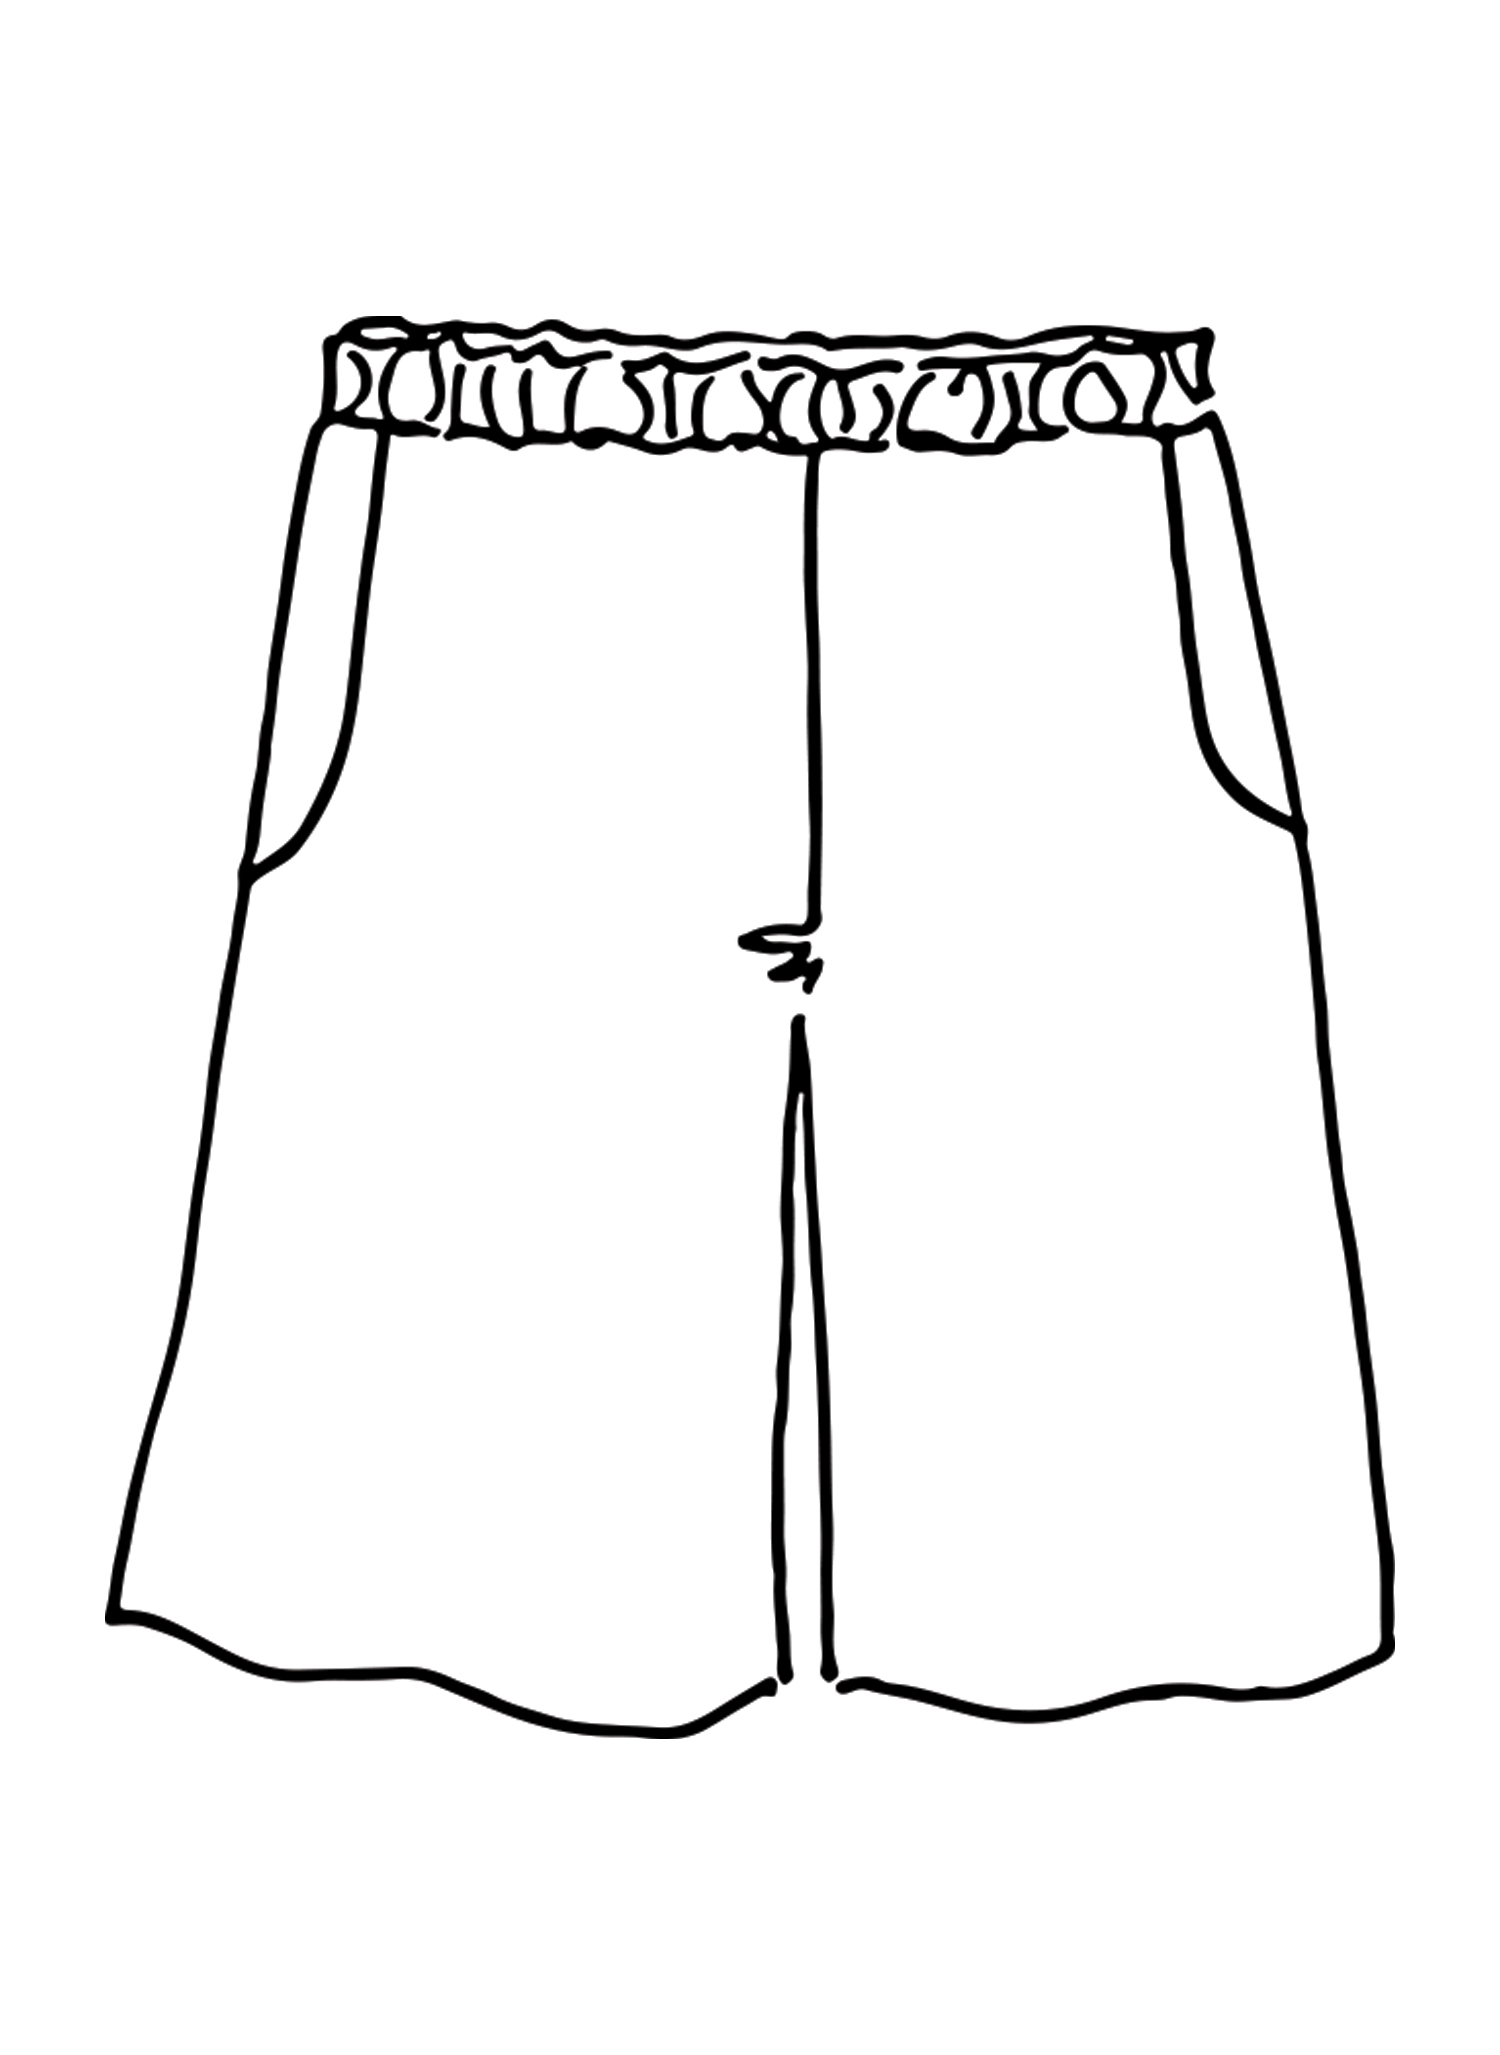 Sun Shorts sketch image